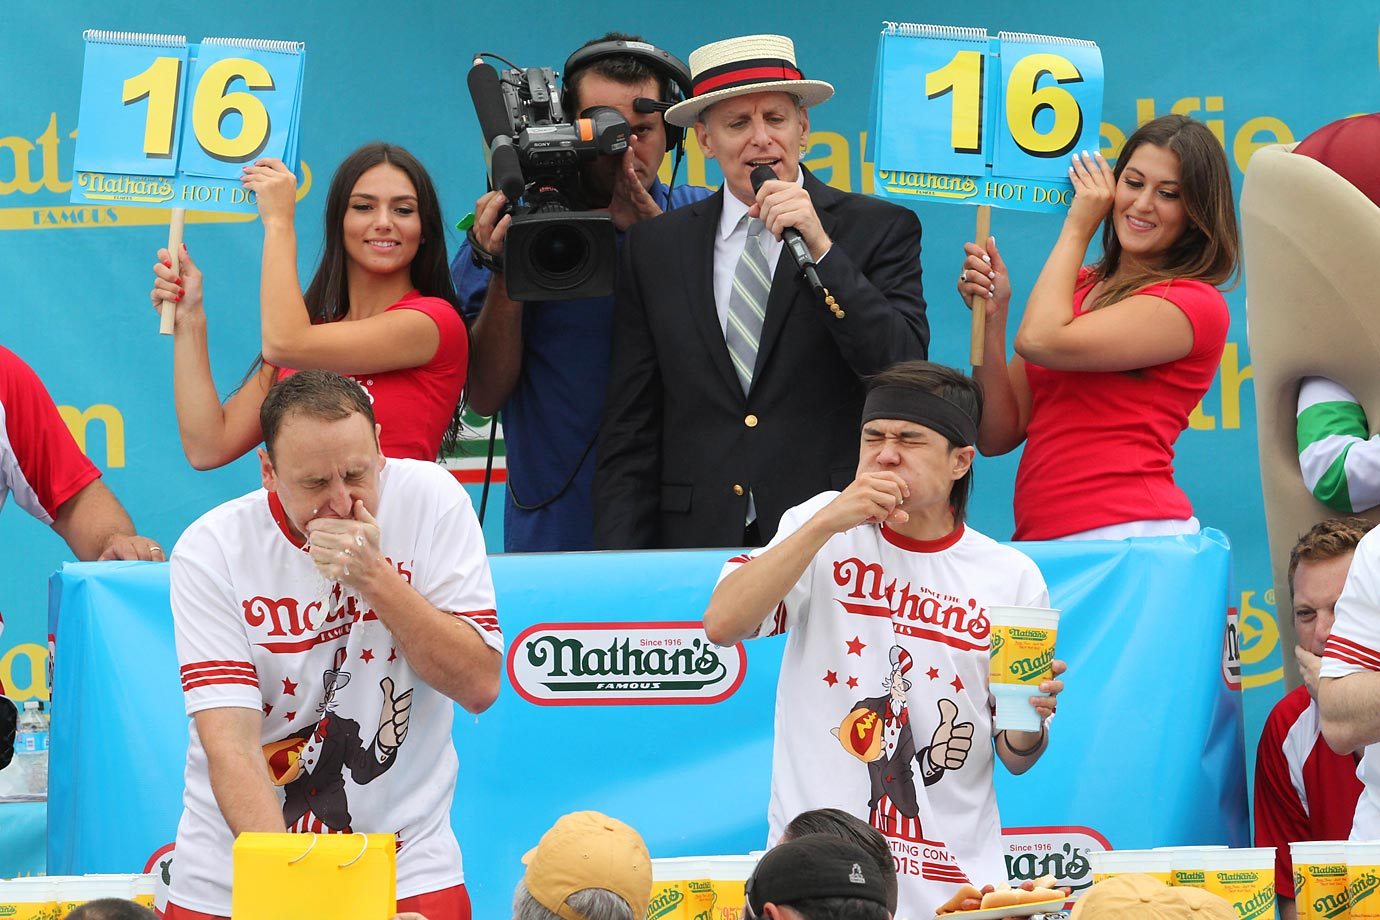 Joey Chestnut, left, and Matt Stonie compete in Nathan's Famous Fourth of July International Hot Dog Eating Contest. Stonie came in first, eating 62 hot dogs and buns in 10 minutes. Chestnut ate 60 hot dogs and buns in 10 minutes.